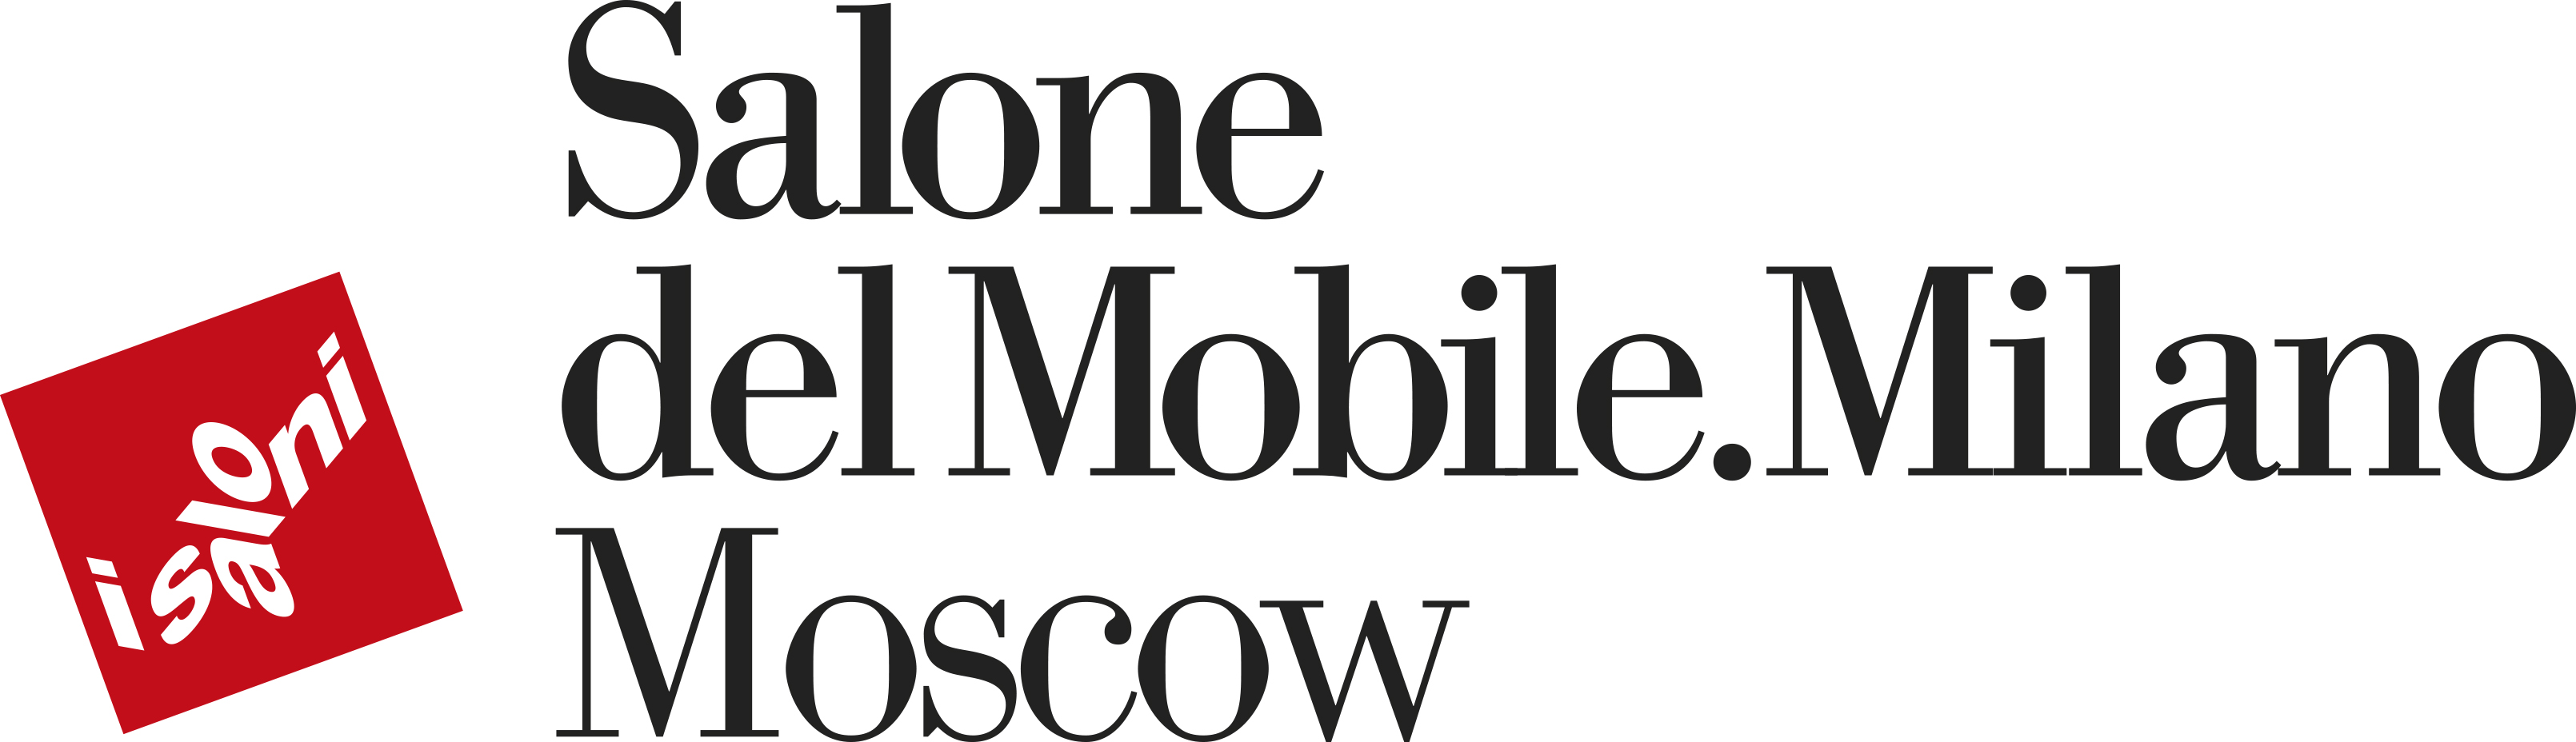 SMM Moscow logo